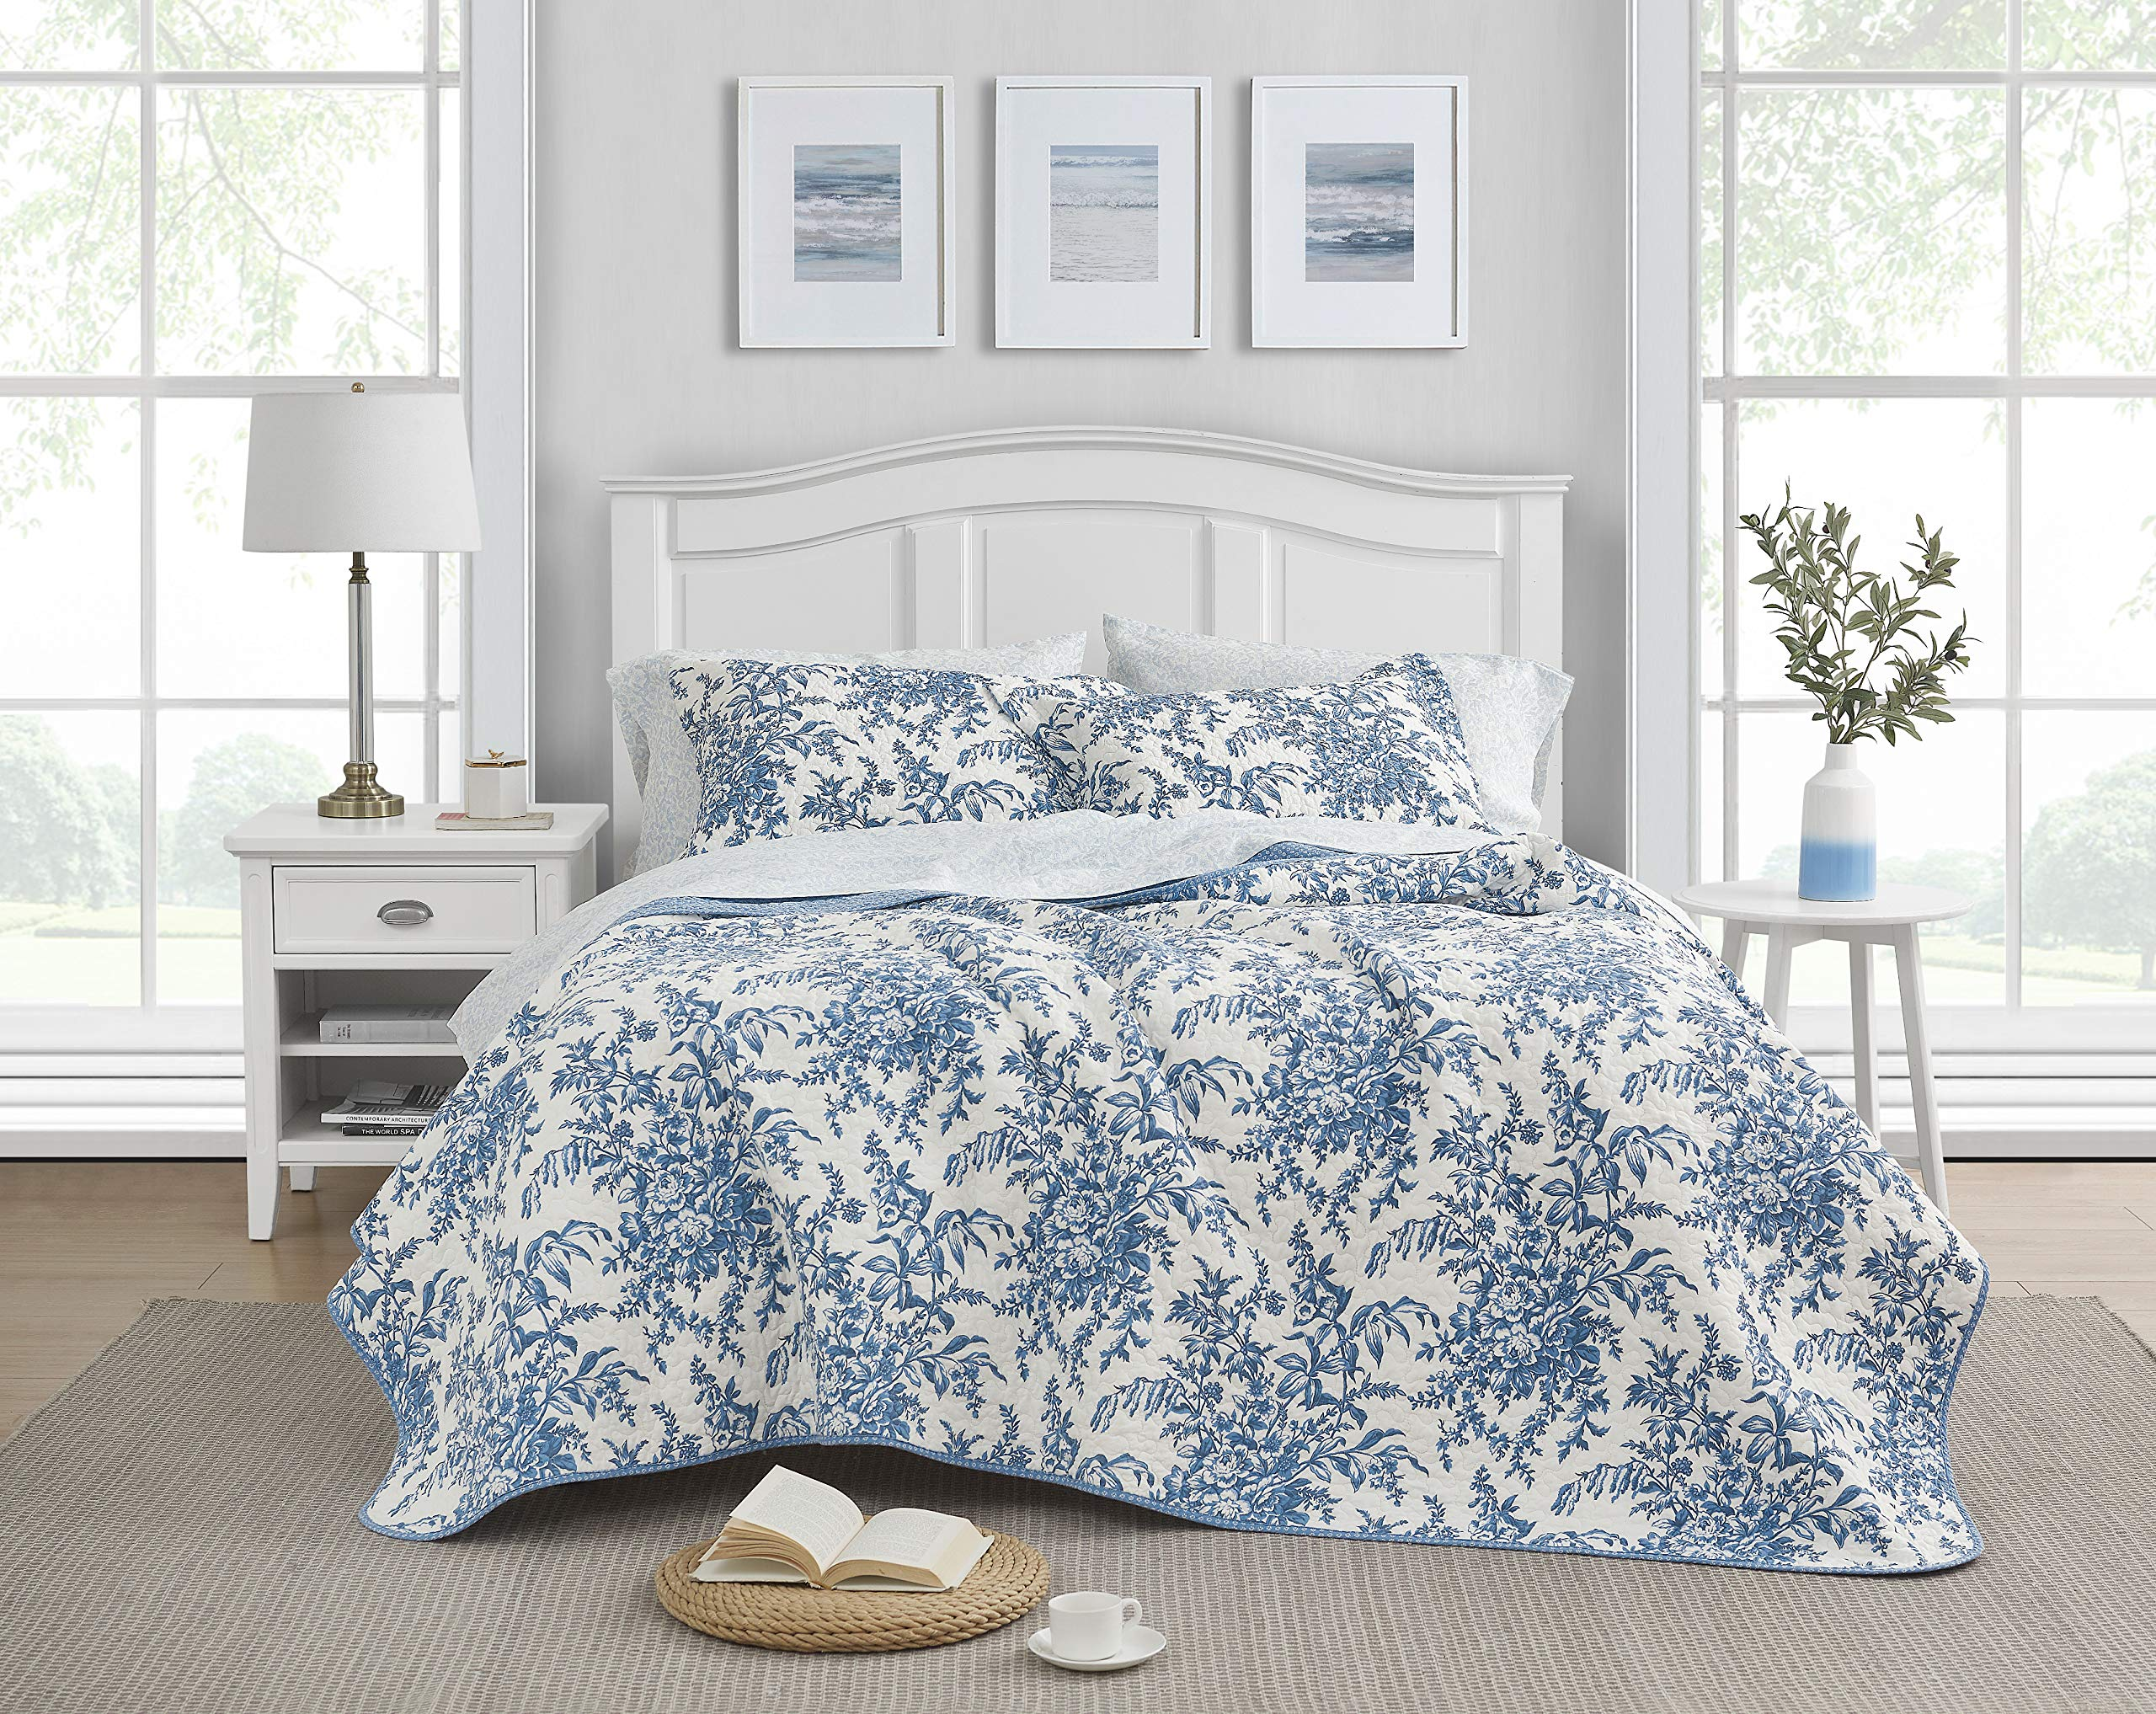 Laura Ashley Home Bedford Collection Luxury Premium Ultra Soft Quilt Set, Comfortable & Stylish, All Season Bedding, King, Delft